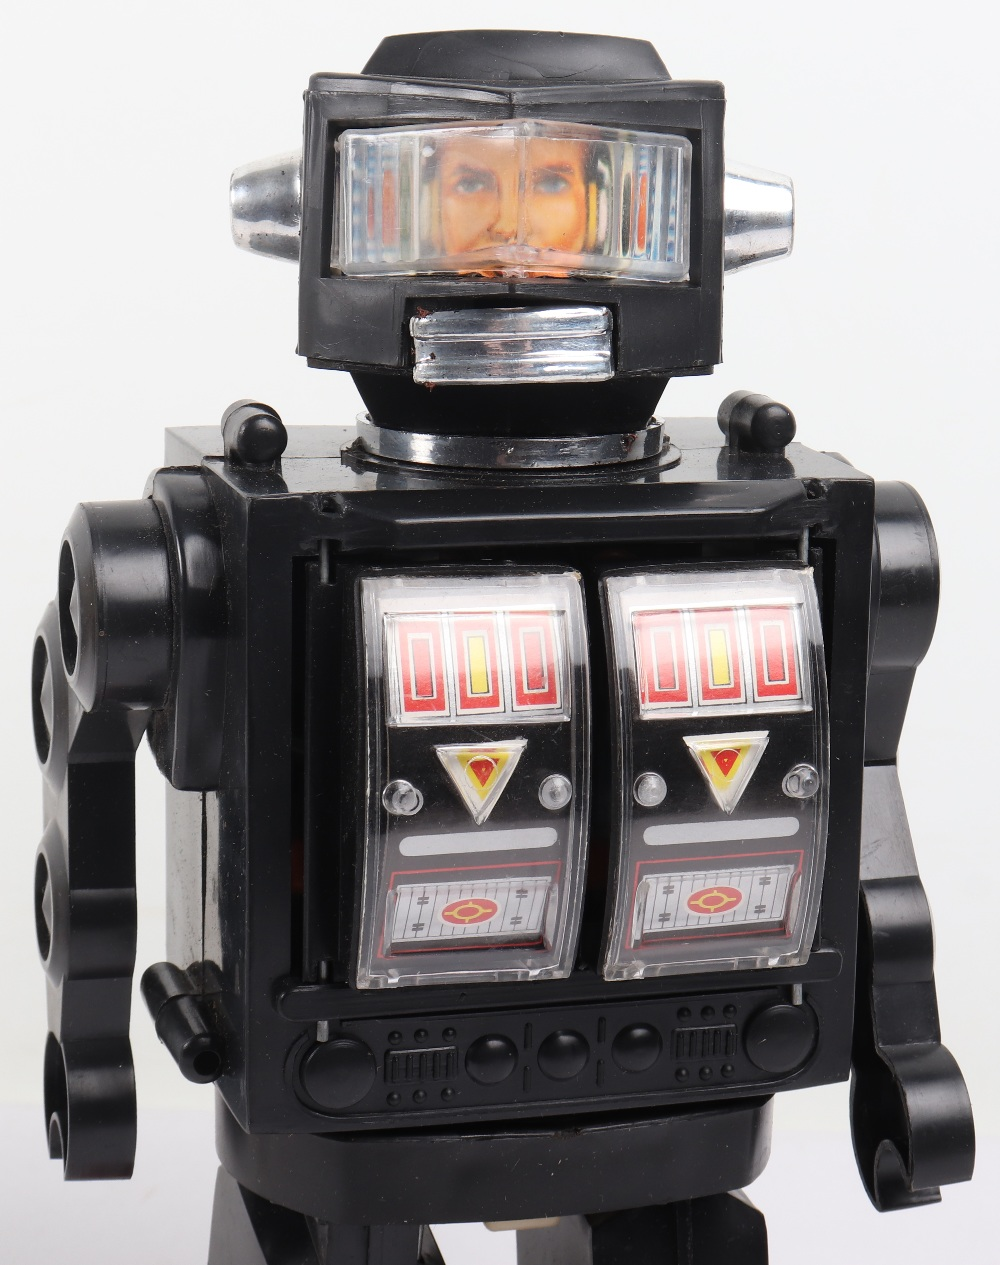 Vintage 1970s HK toys Battery operated super moon explorer Plastic robot - Image 3 of 3